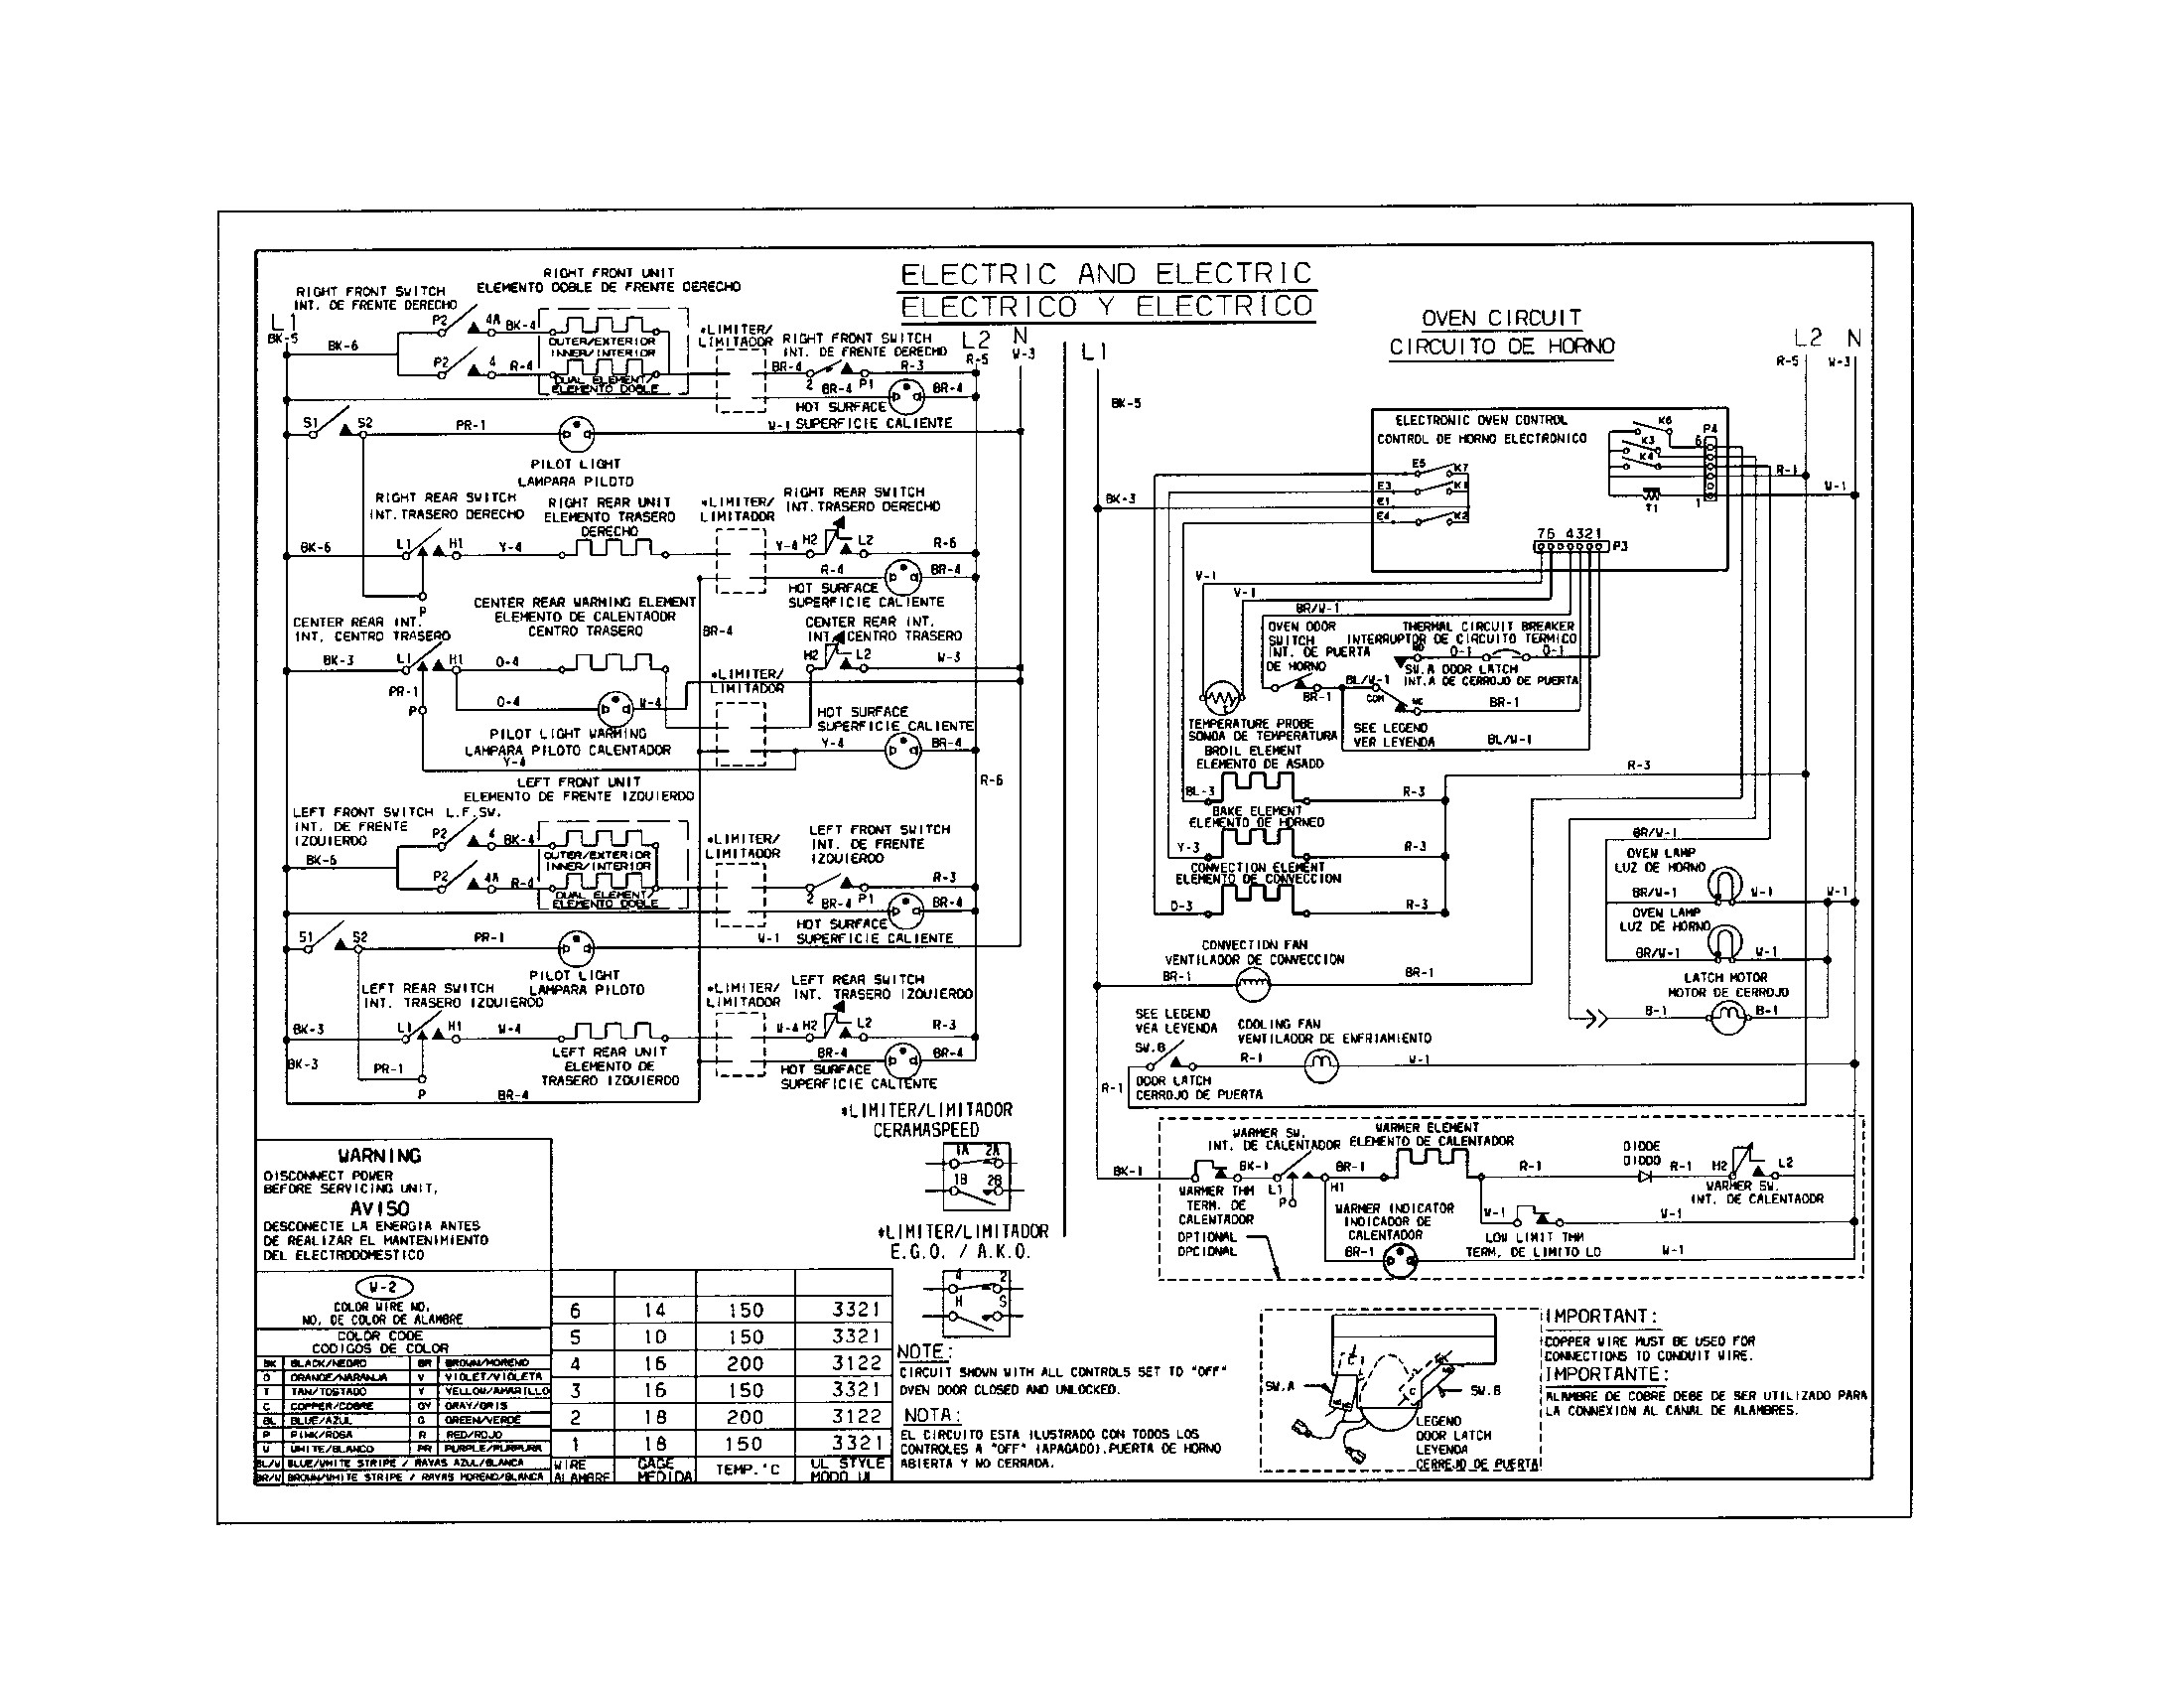 switch oven wiring diagram model 363 9378880 circuit diagram symbols u2022 rh stripgore com